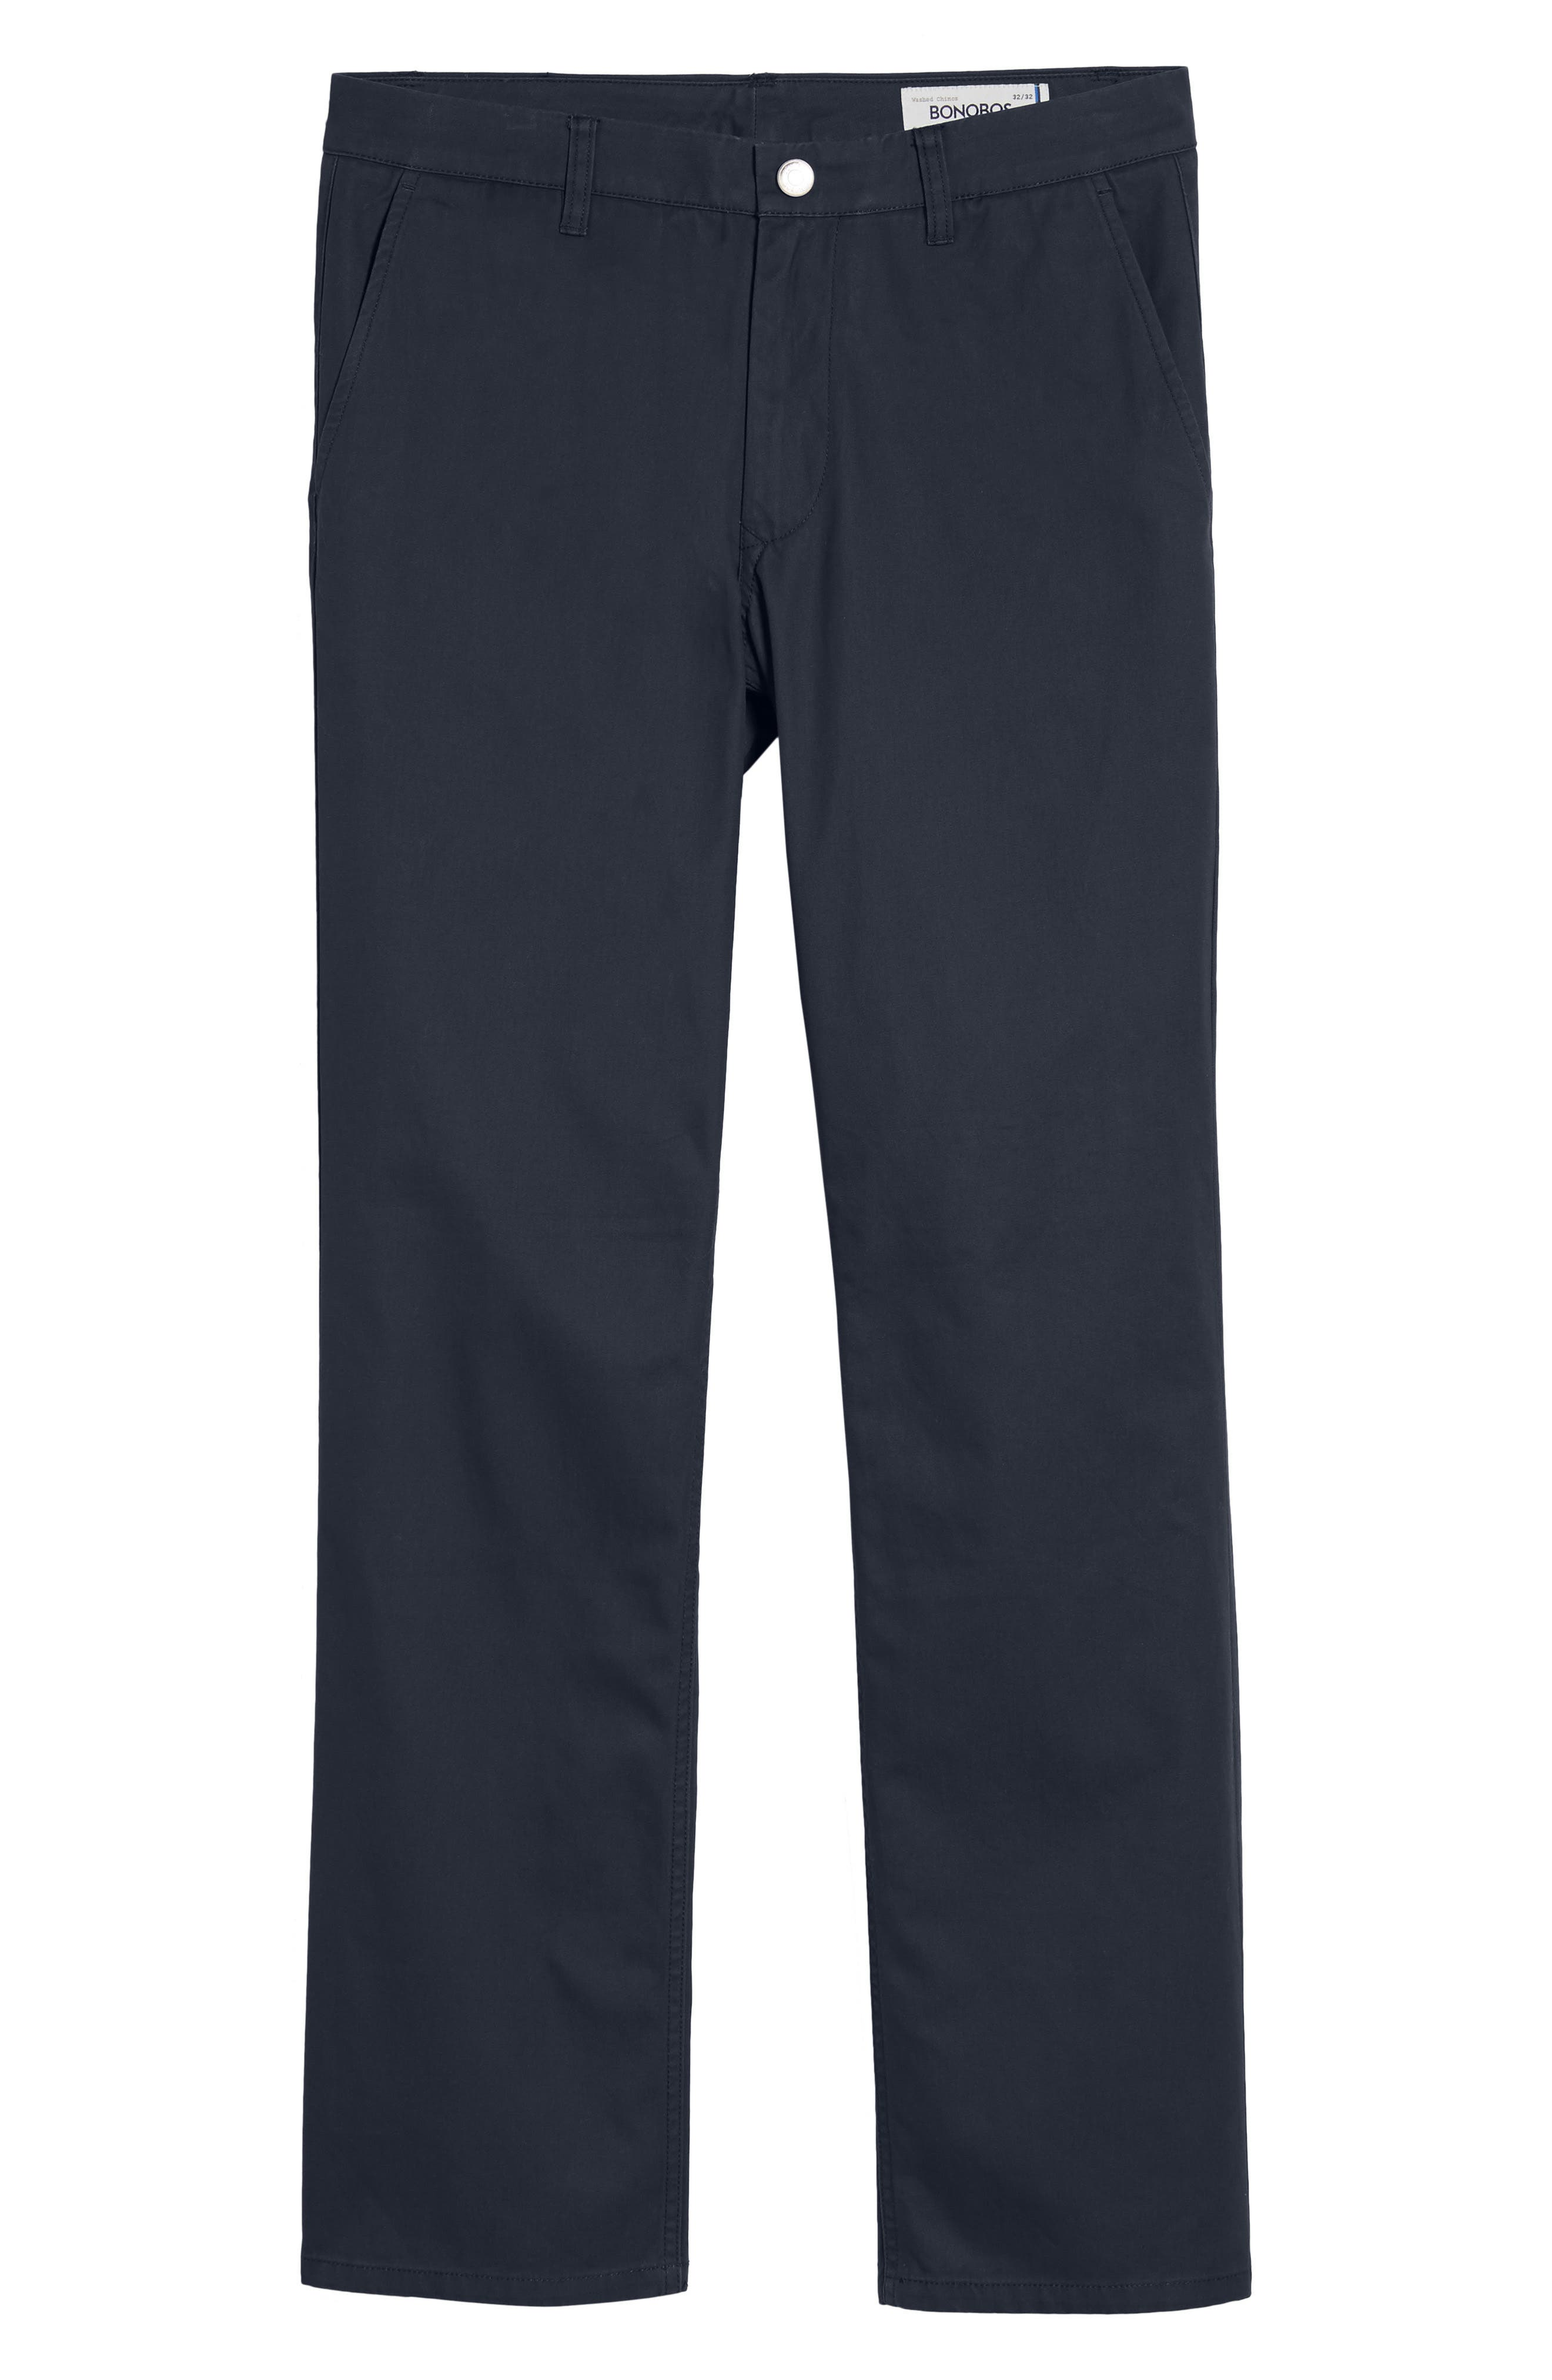 BONOBOS, Straight Fit Washed Chinos, Alternate thumbnail 5, color, JET BLUE